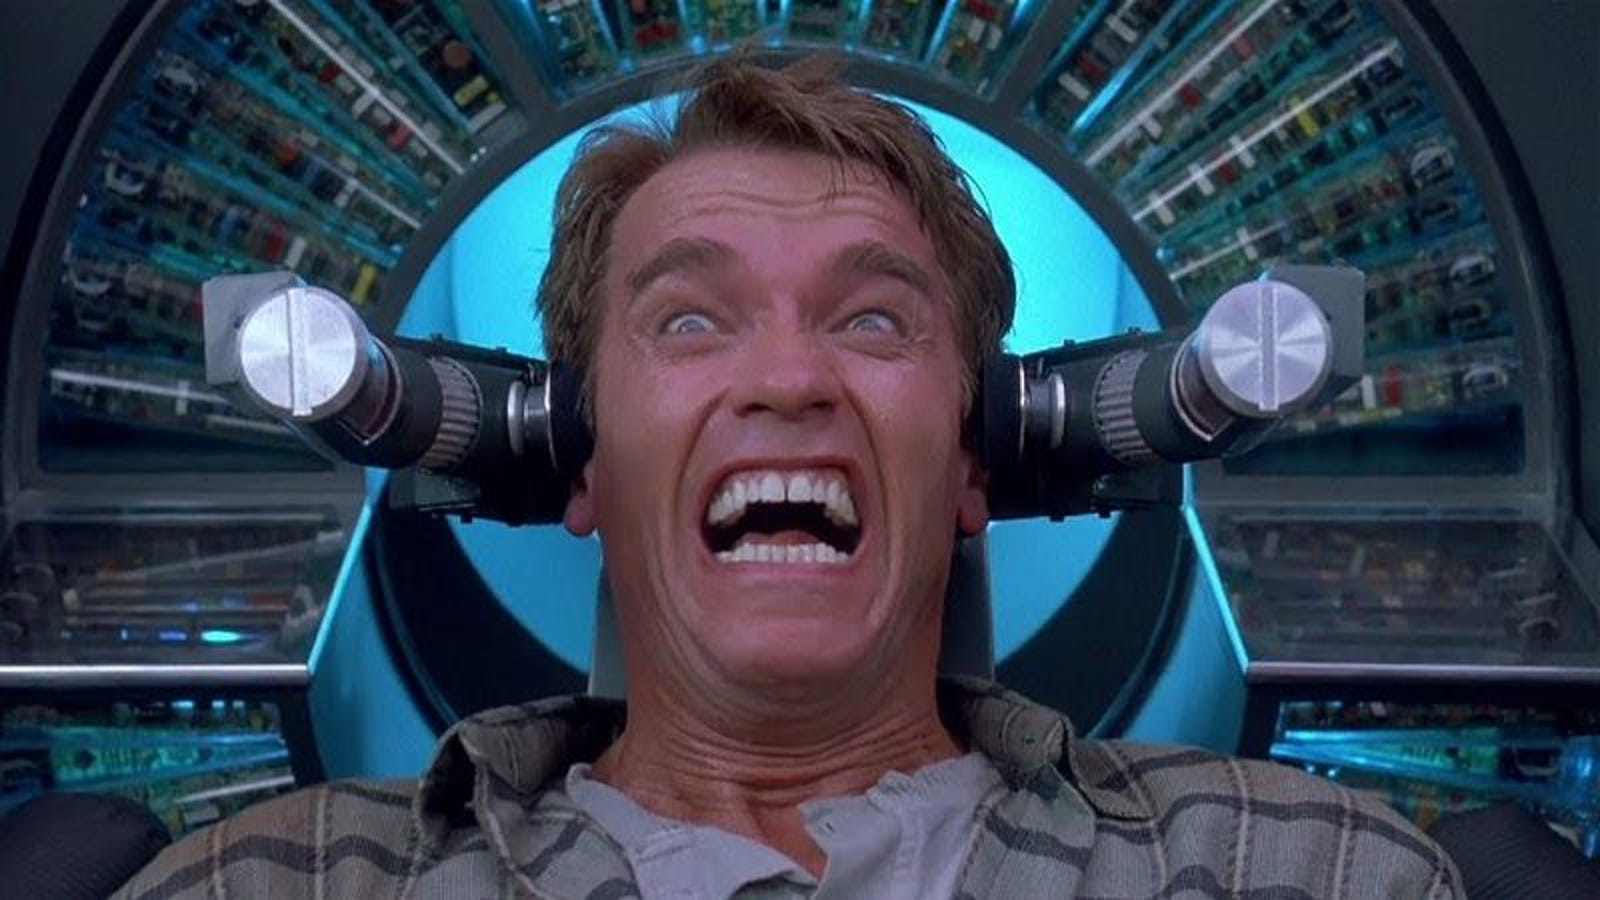 With Total Recall, Schwarzenegger got to blow things up and